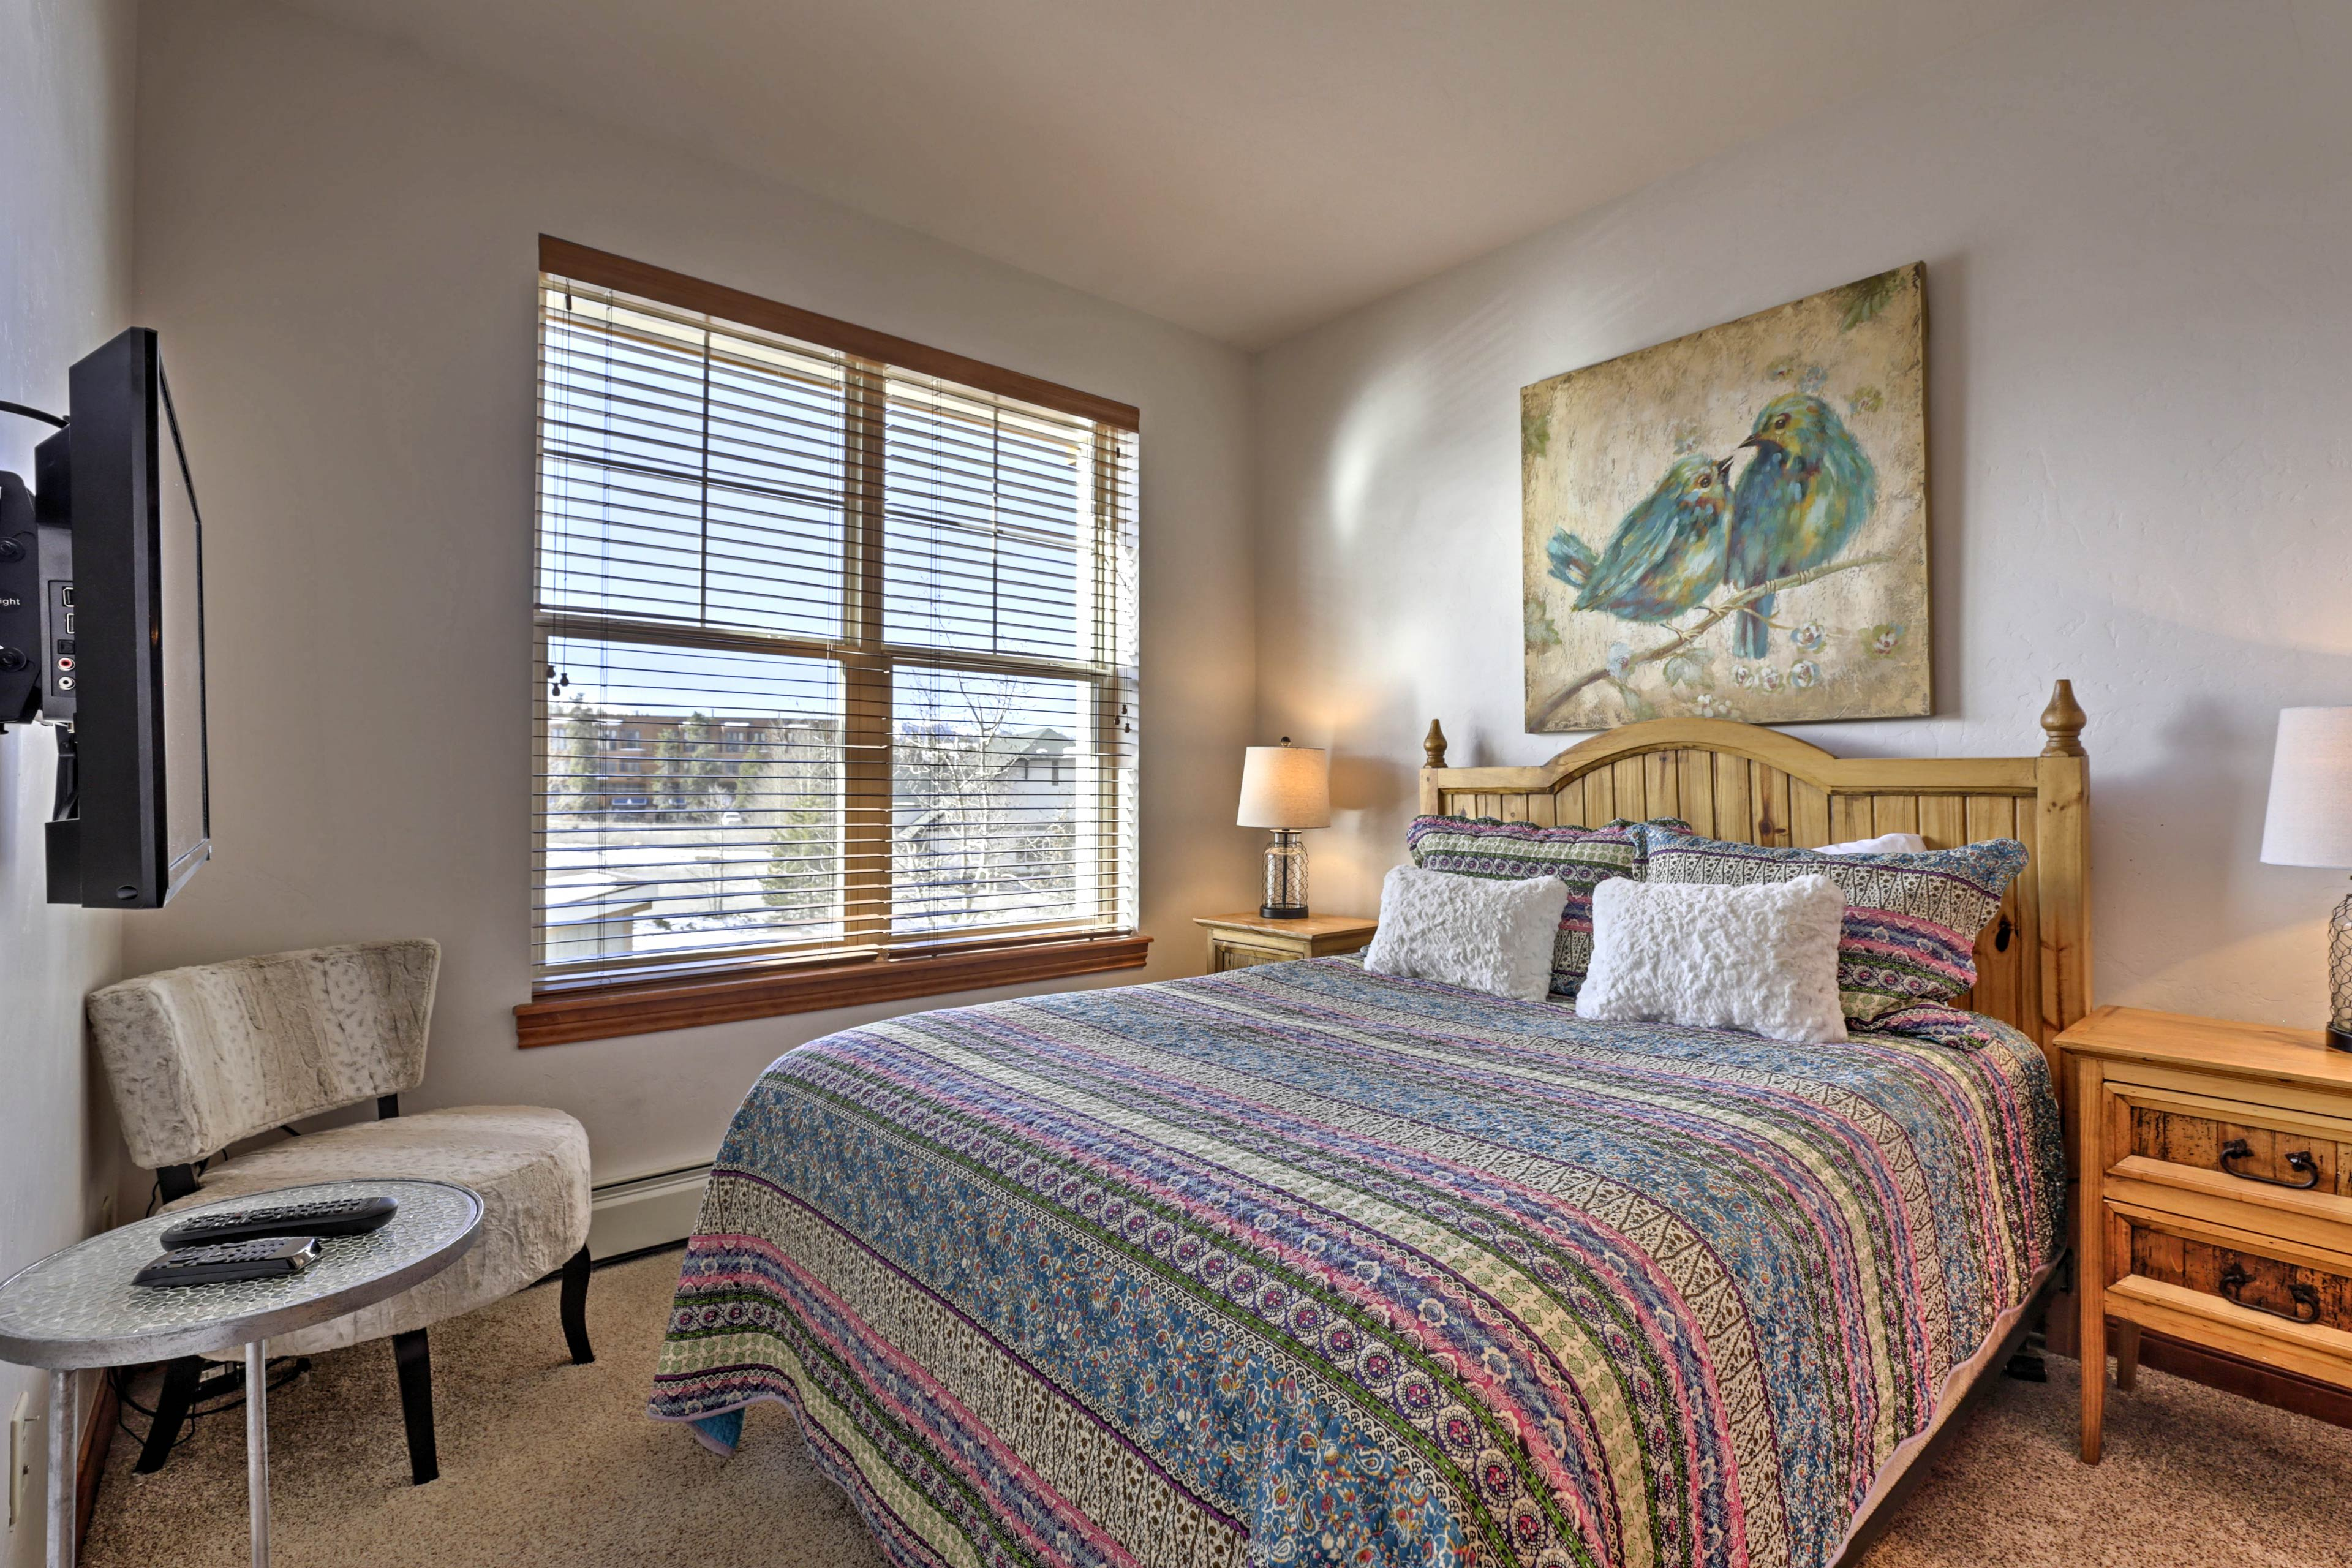 Two can share this bedroom offering a plush queen-sized bed.